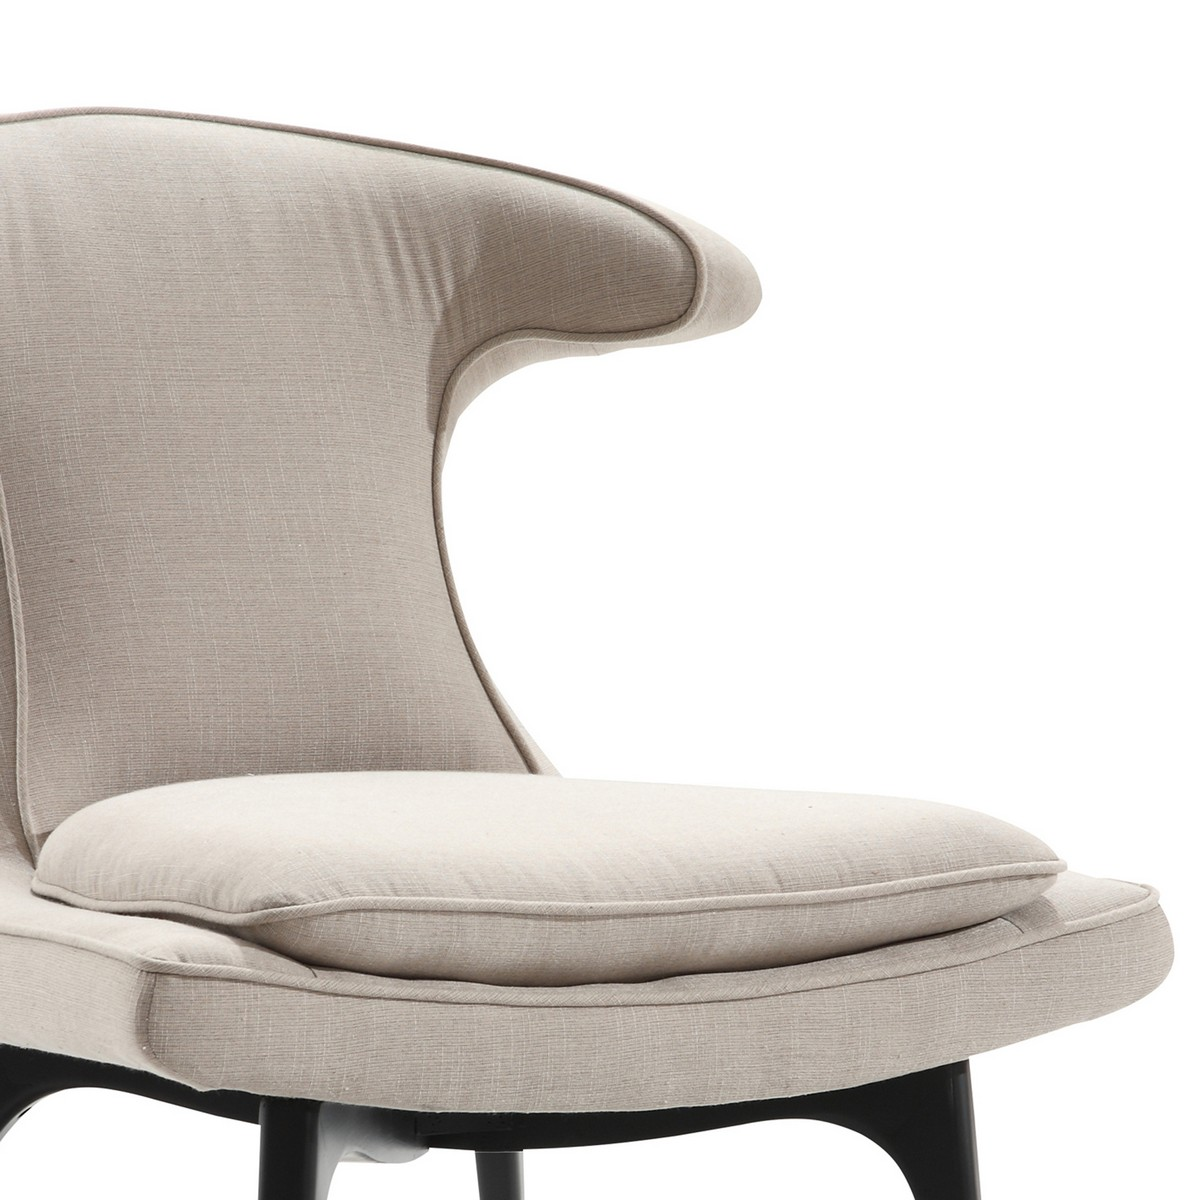 Armen Living Aria Modern Chair In Taupe Fabric and Black Wood